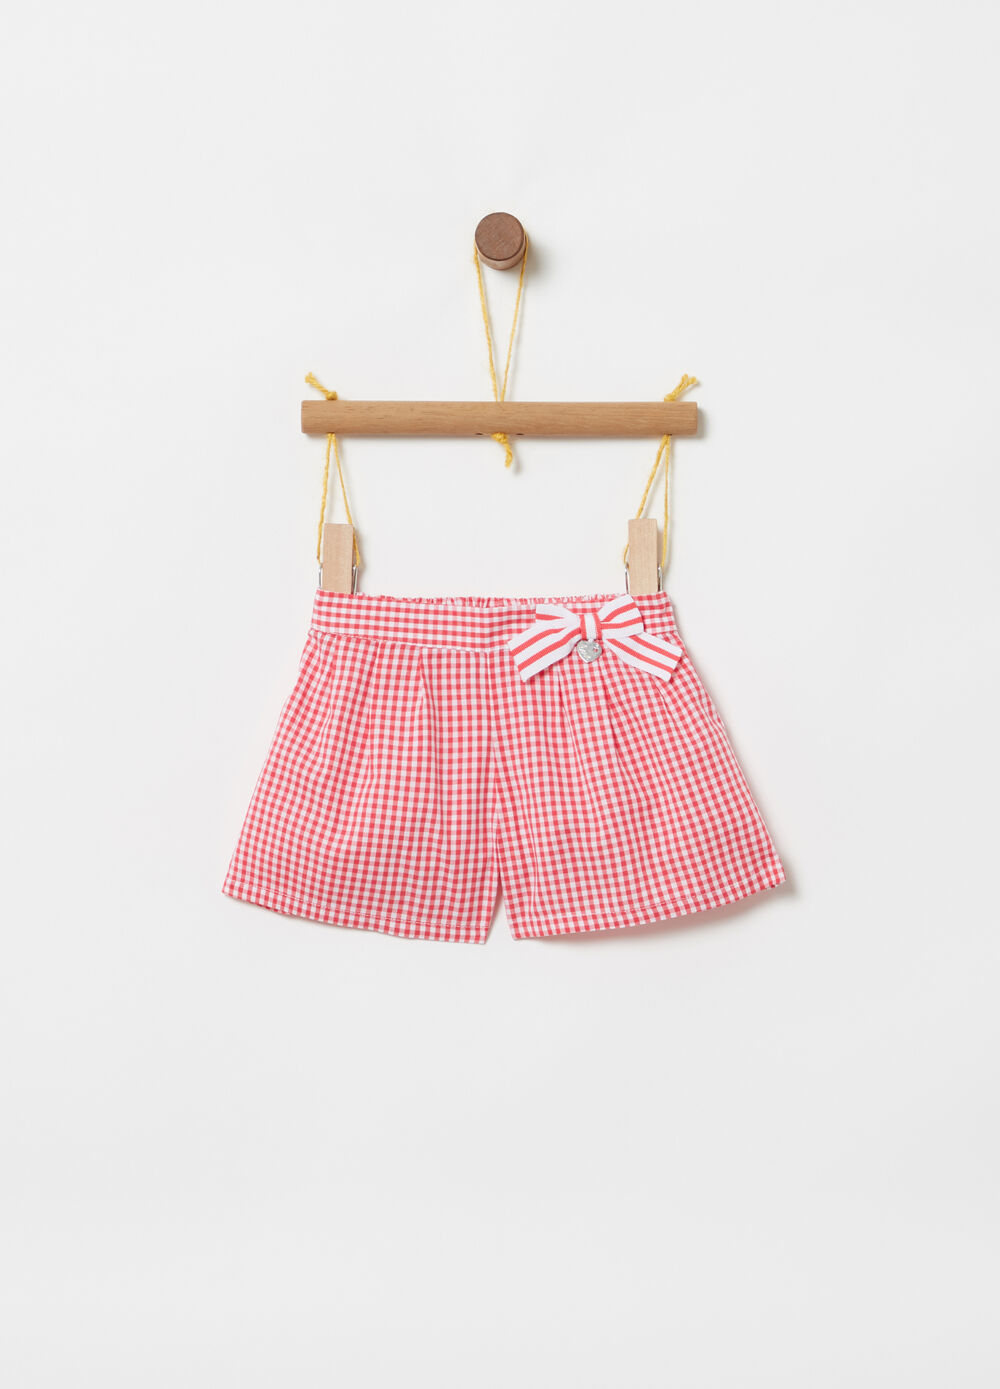 ***Better Cotton Initiative vichy skirt pants with bow